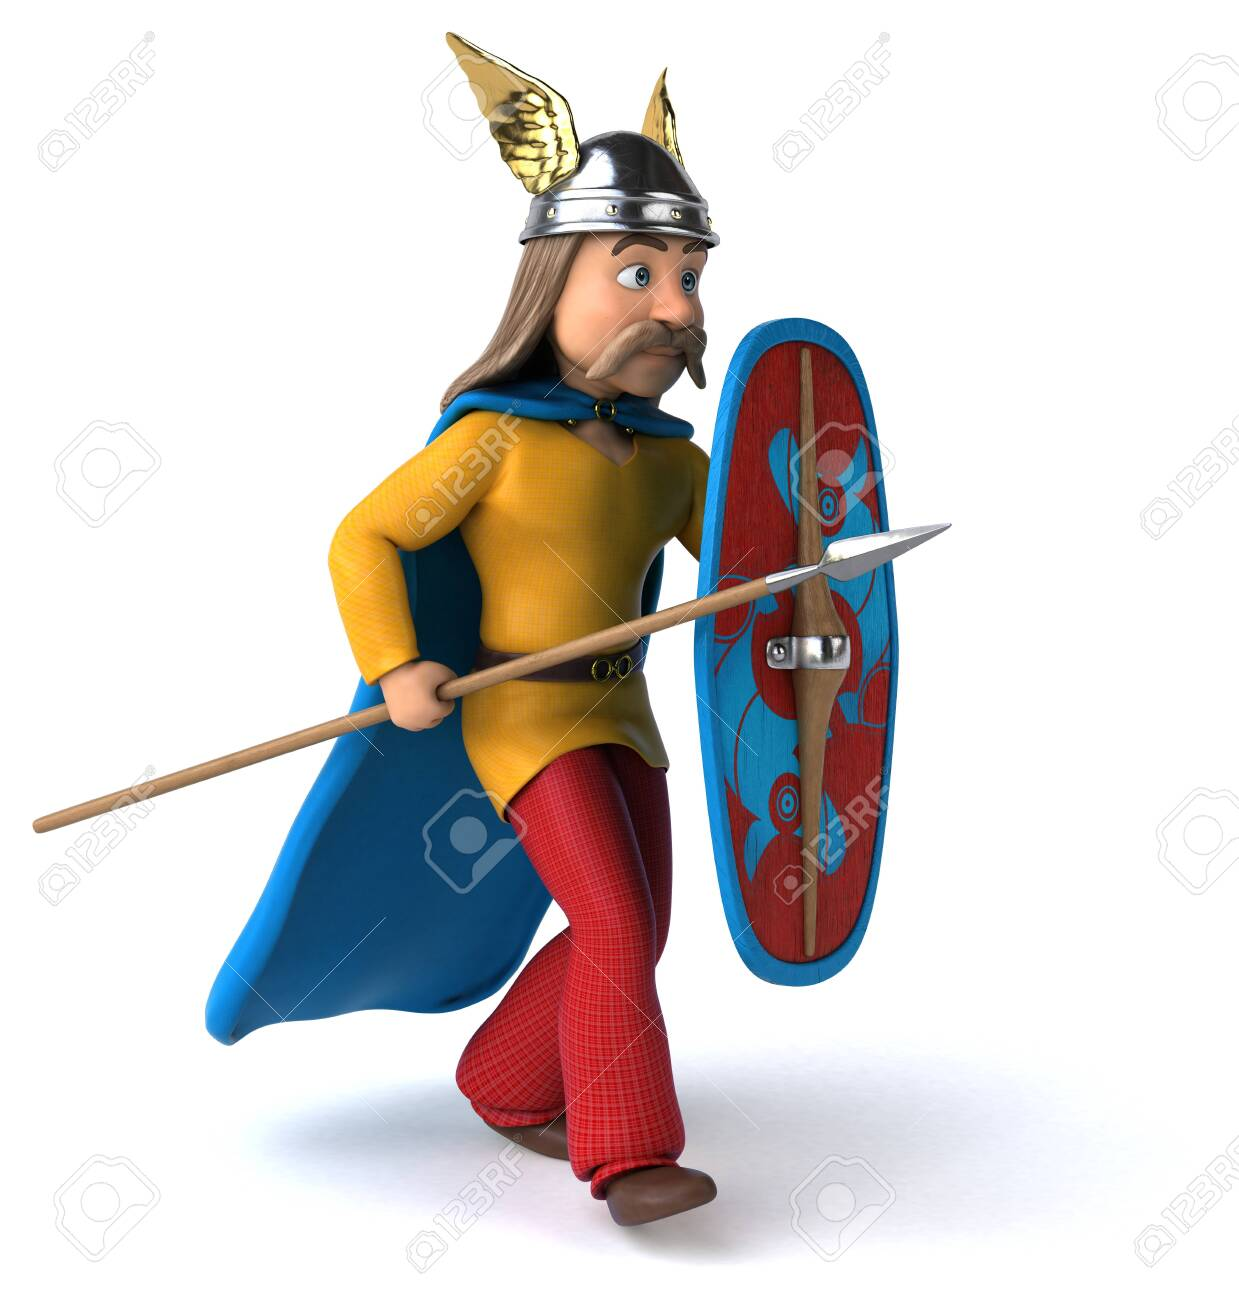 Gaul holding spear and shield